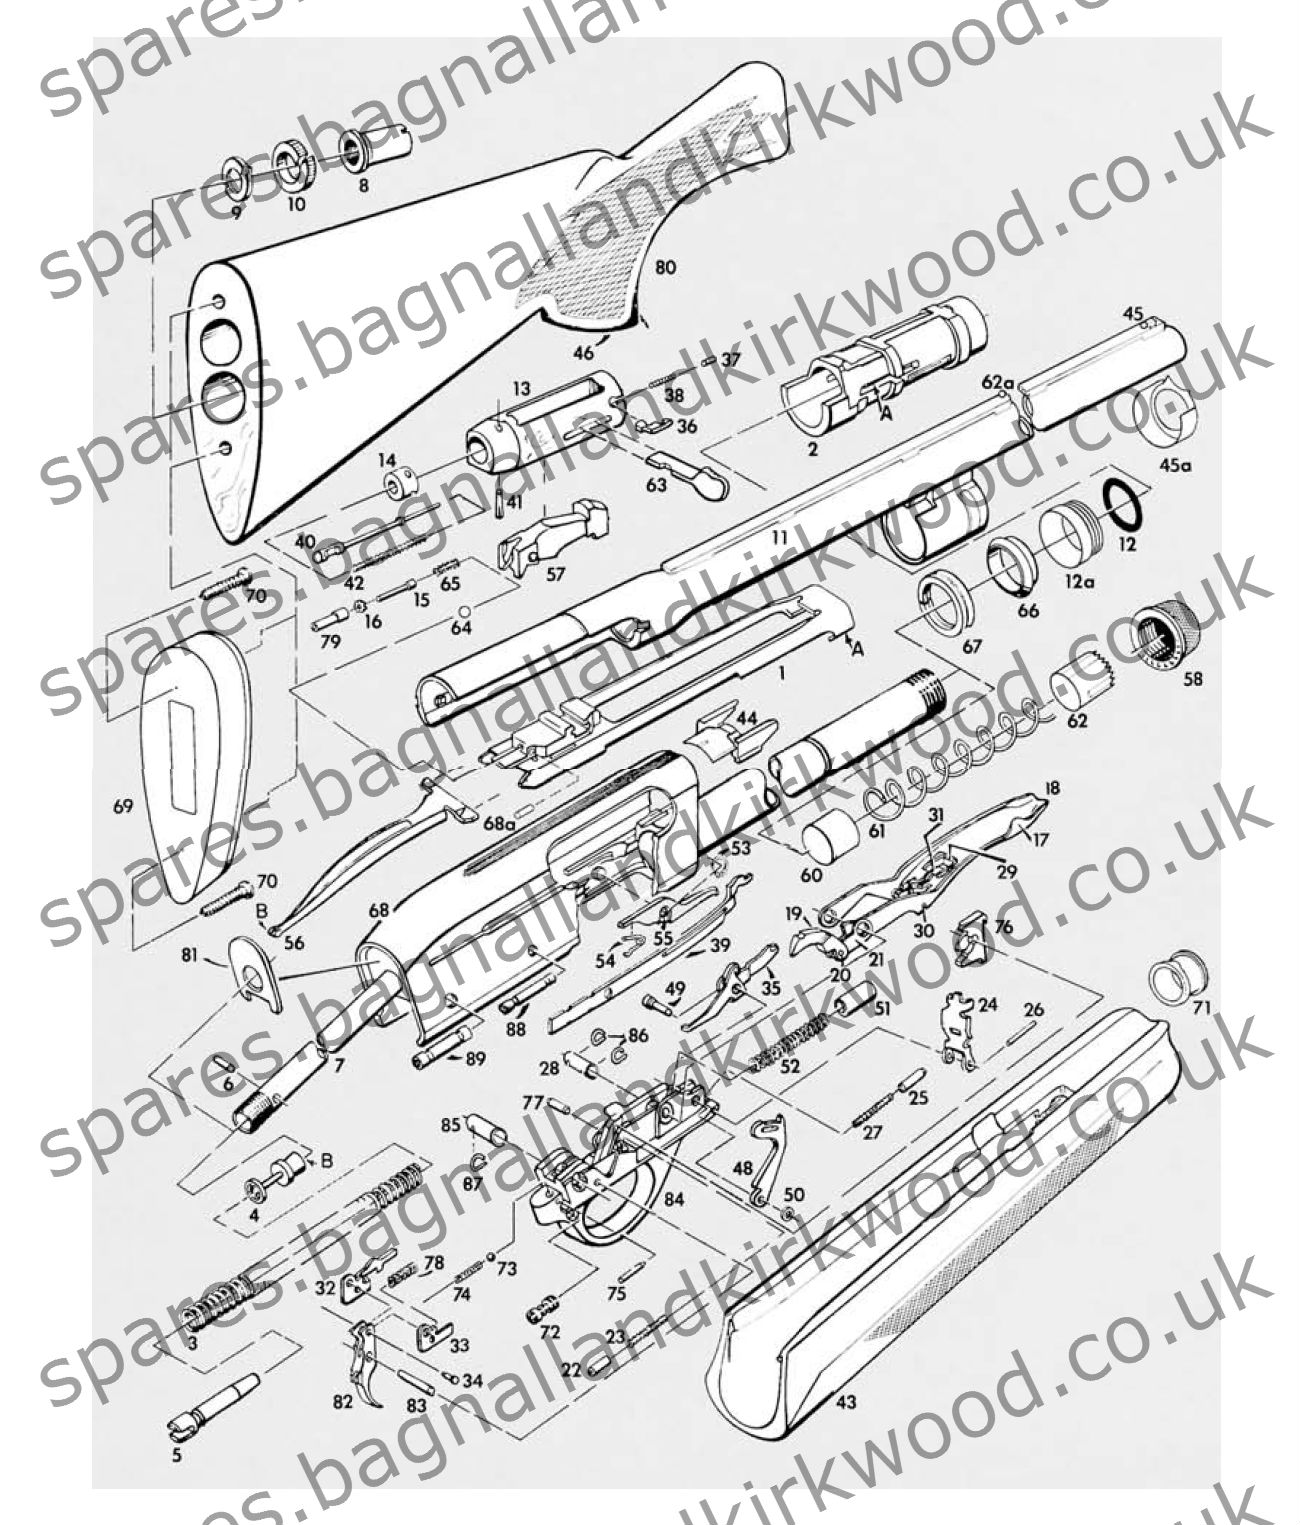 remington 1100 shotgun spare parts bagnall and kirkwood airgun spares rh spares bagnallandkirkwood co uk remington 1100 assembly diagram remington 1100 breakdown diagram